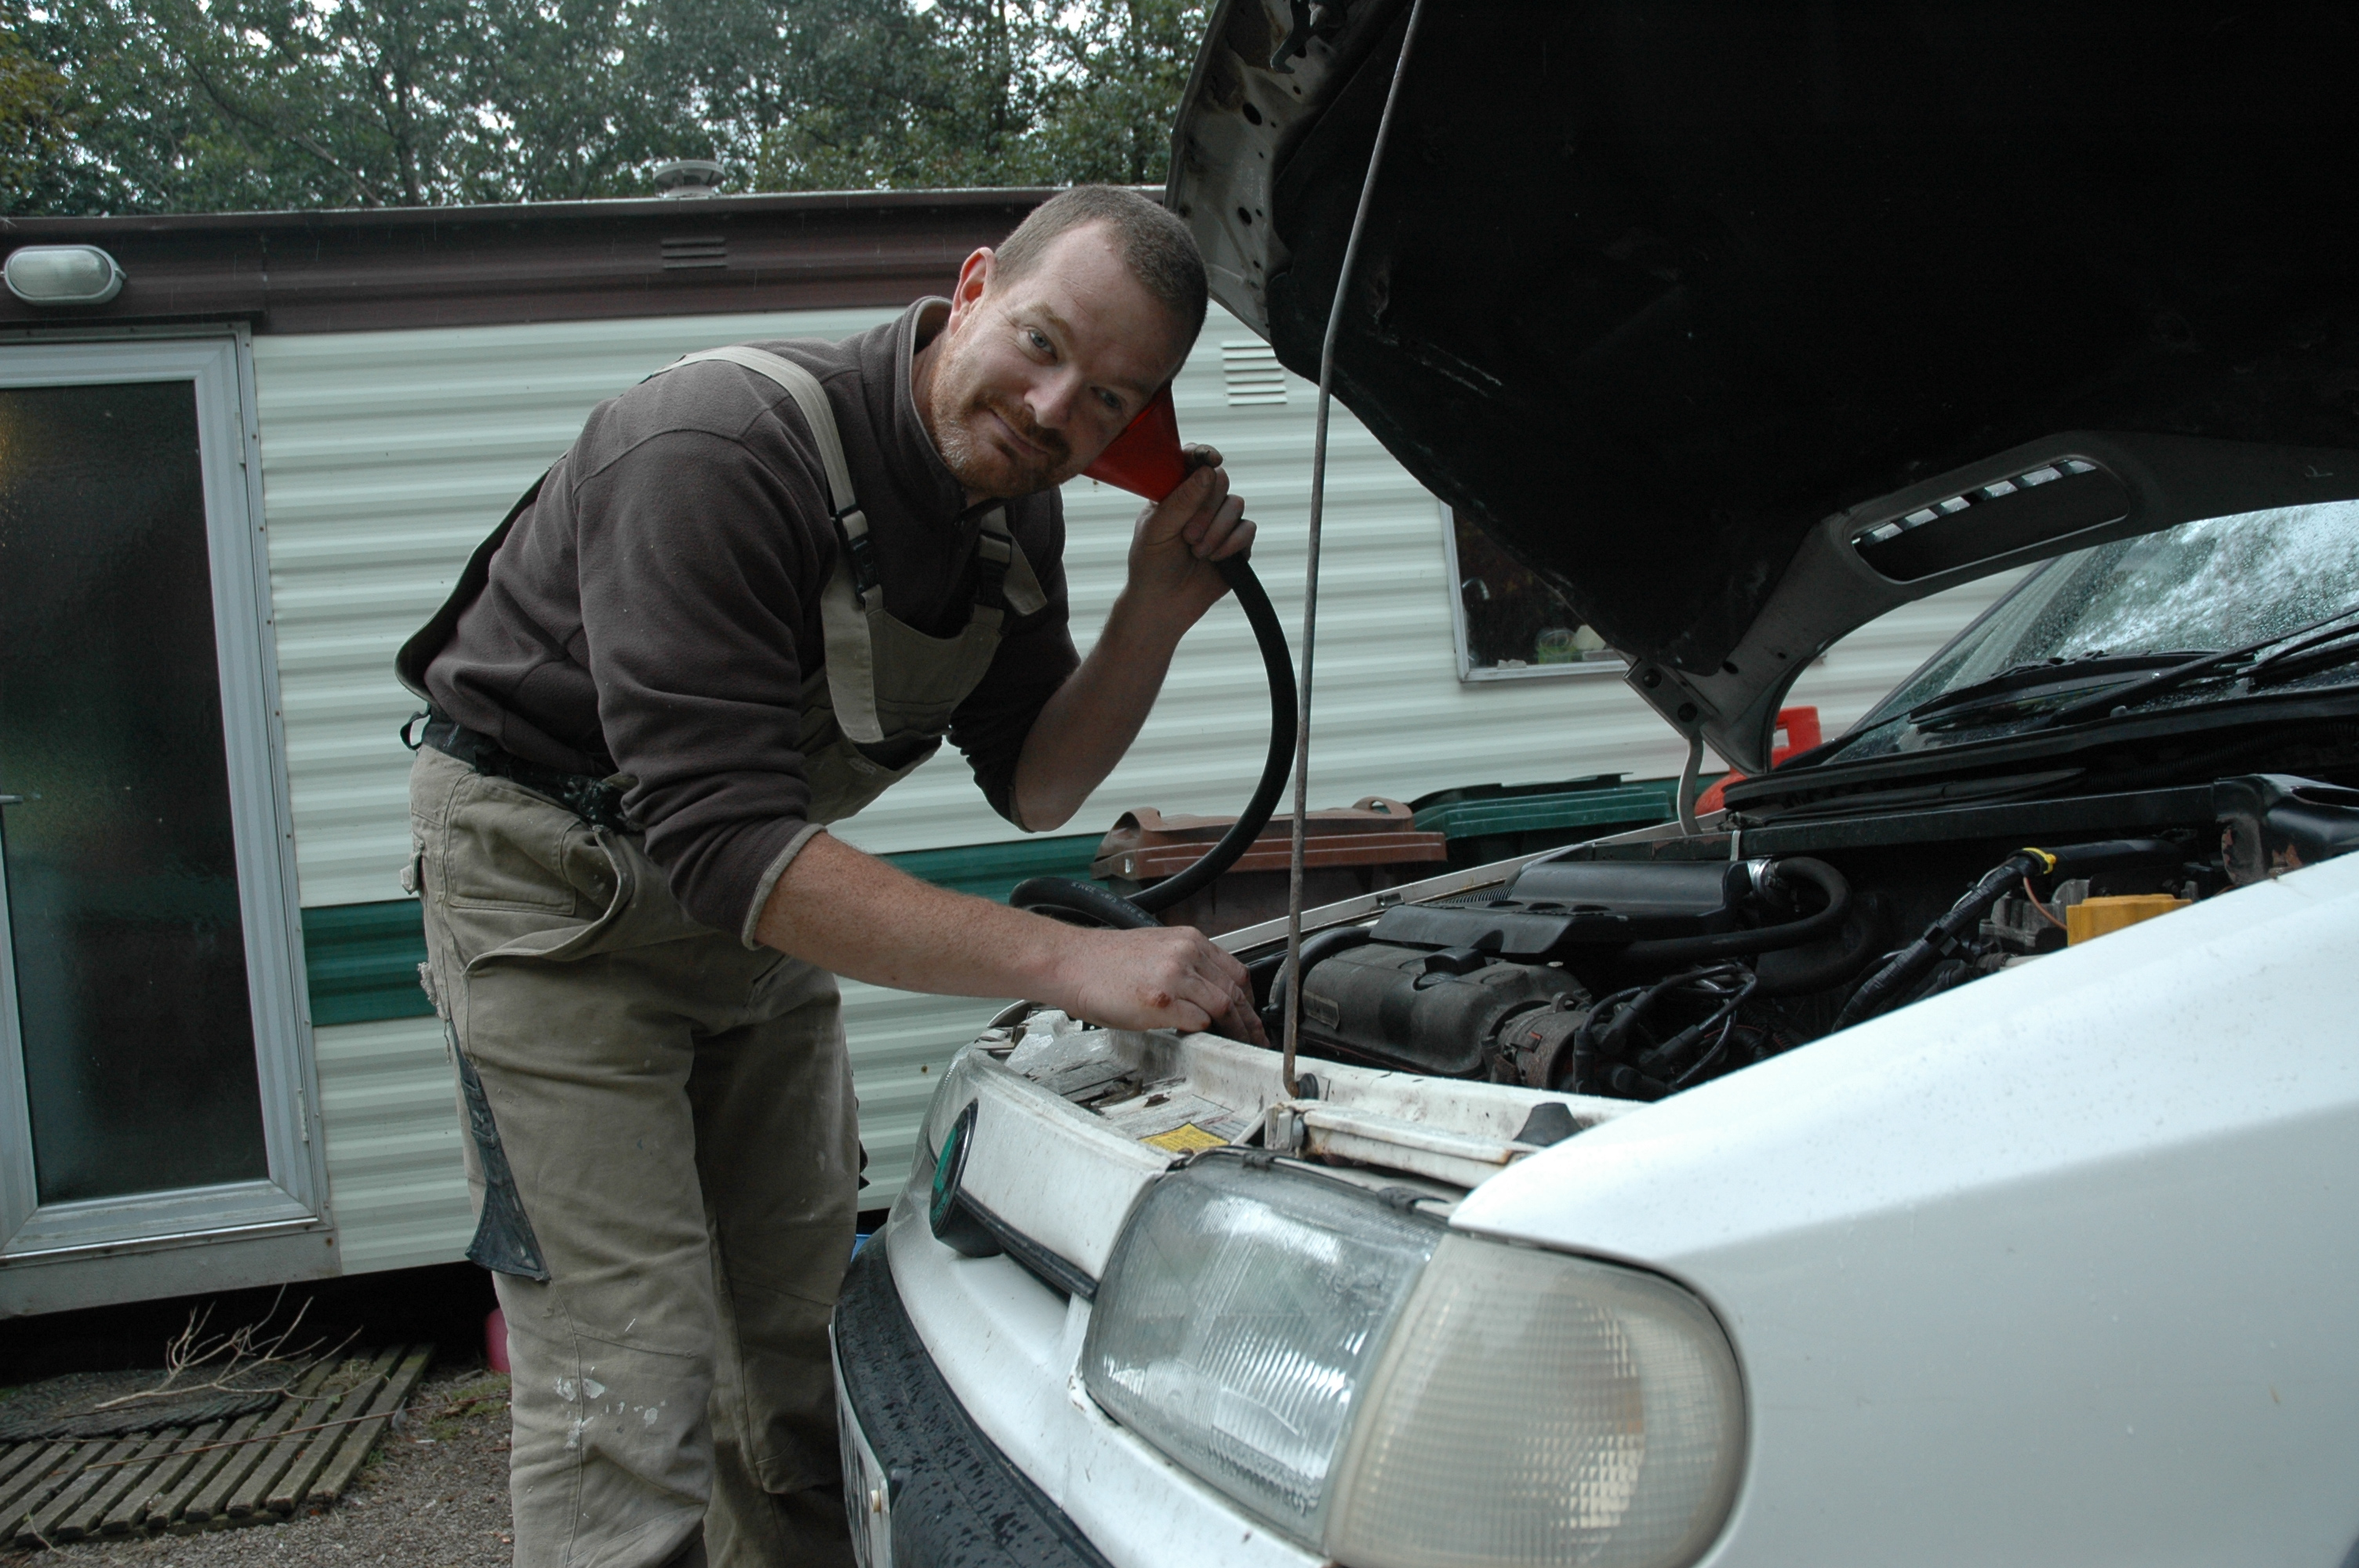 Find an Exhaust Leak Without Burning Your Hands!: 3 Steps